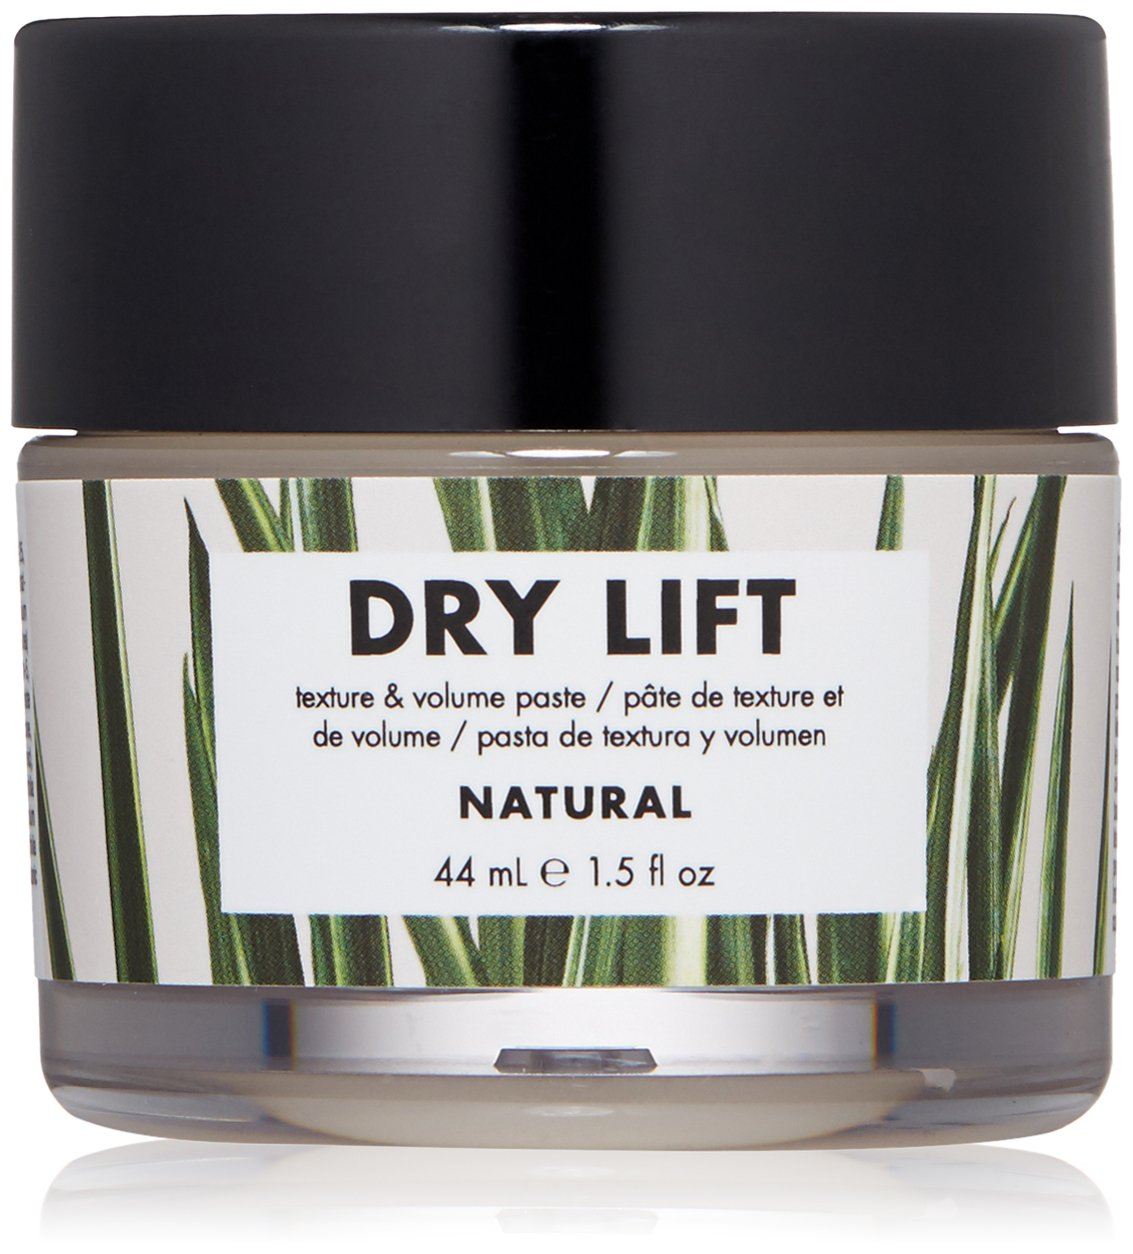 AG Hair Natural Dry Lift Texture And Volume Paste, 1.5 Fl Oz